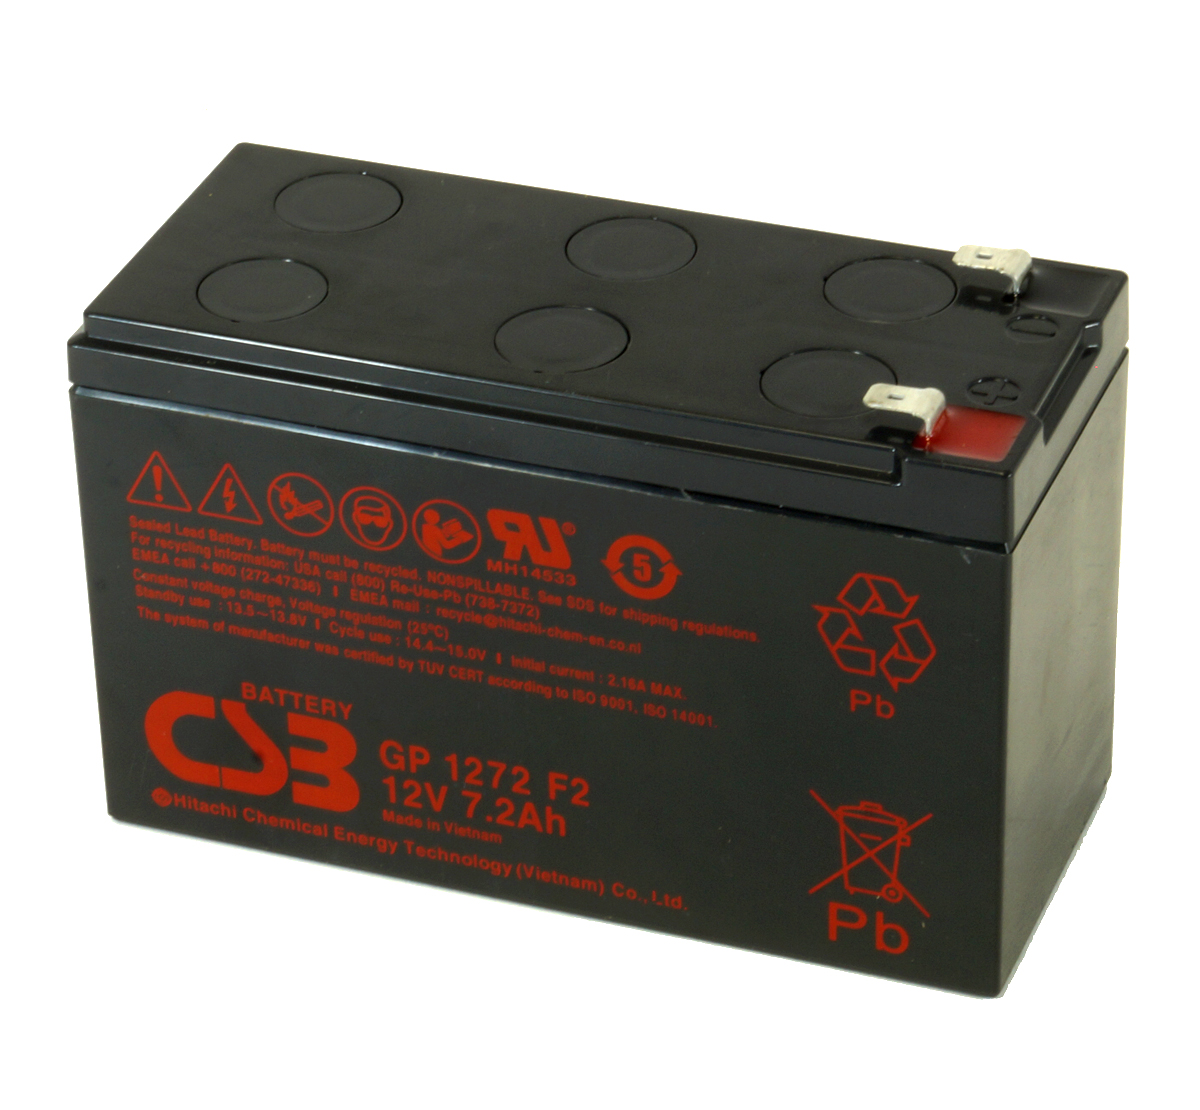 MDS2000 UPS Battery kit for MGE AB2000